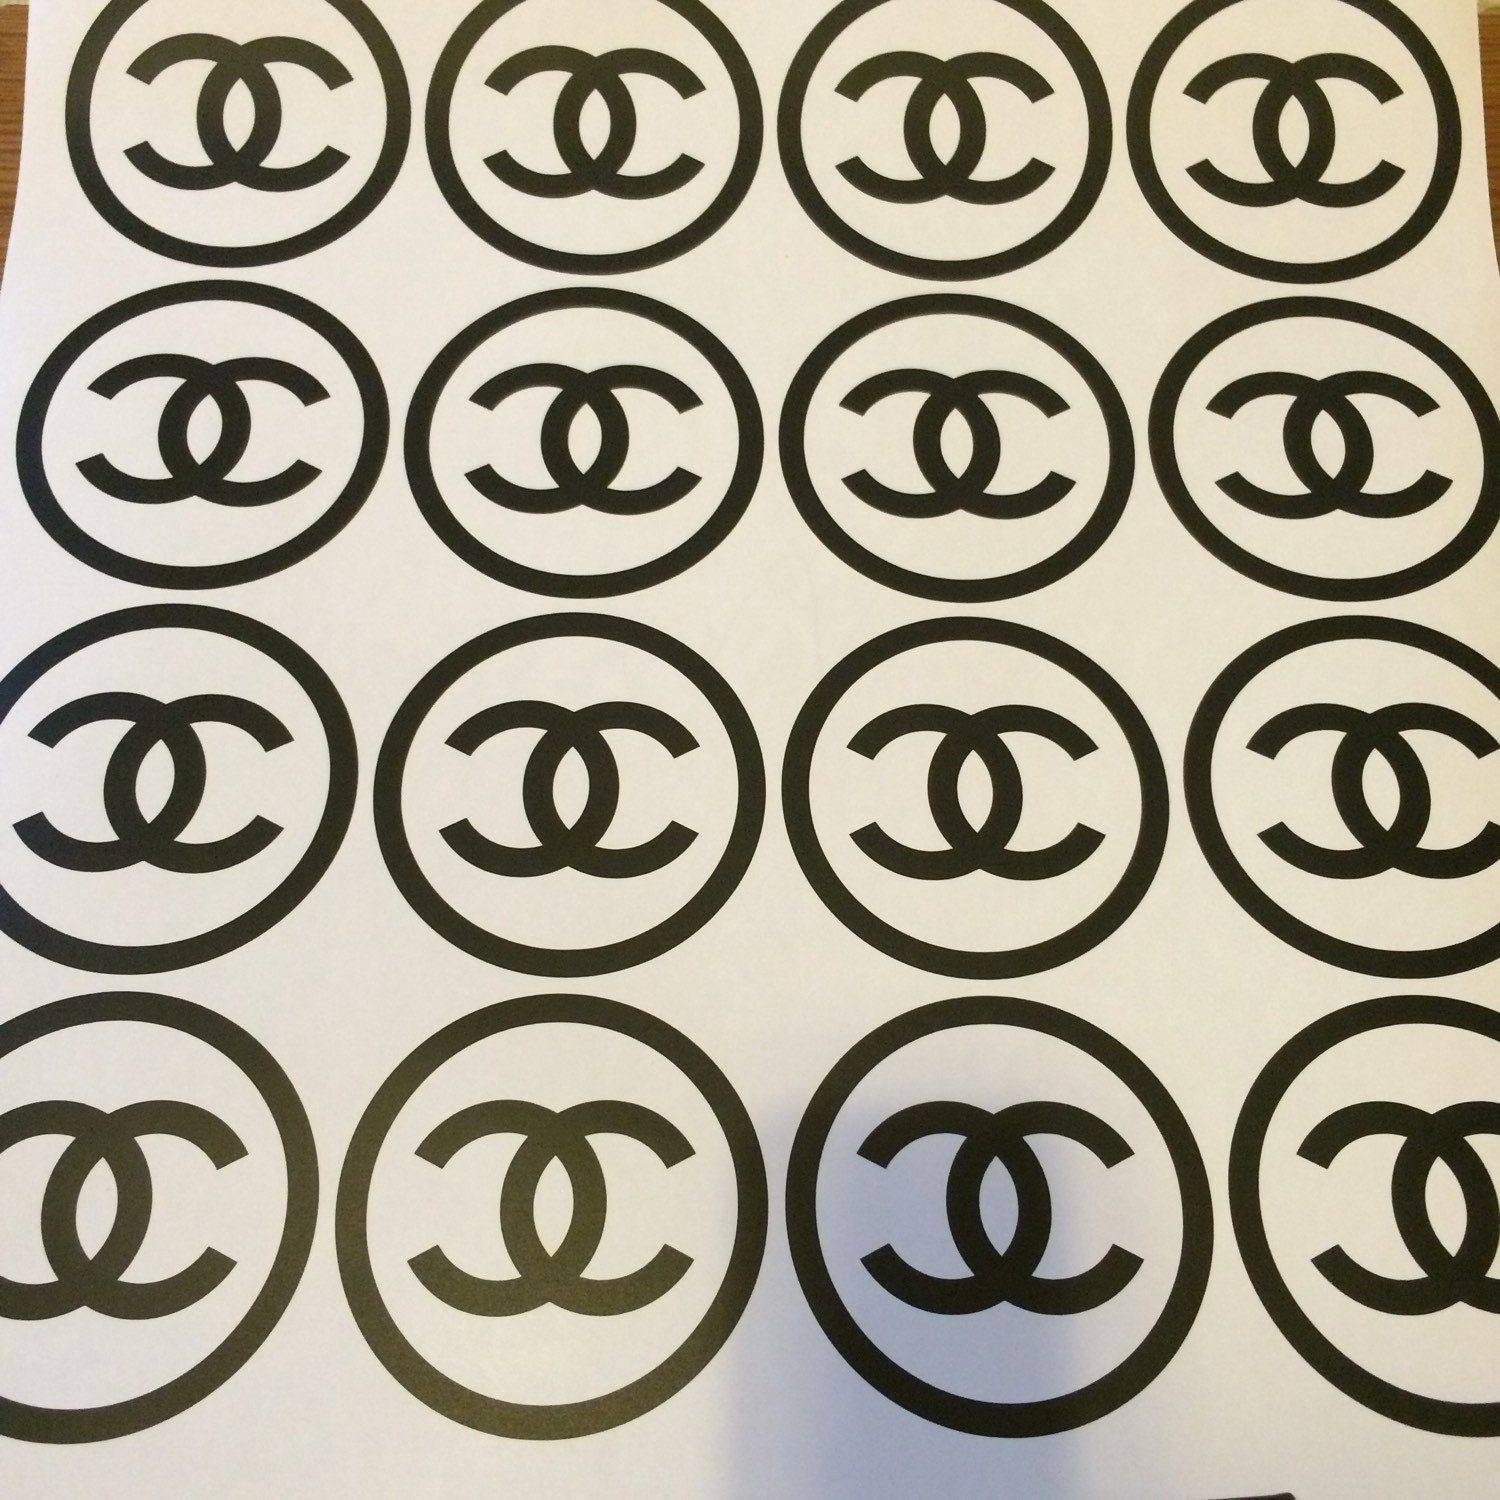 Coco Chanel Logo Stickers –  (View 18 of 30)